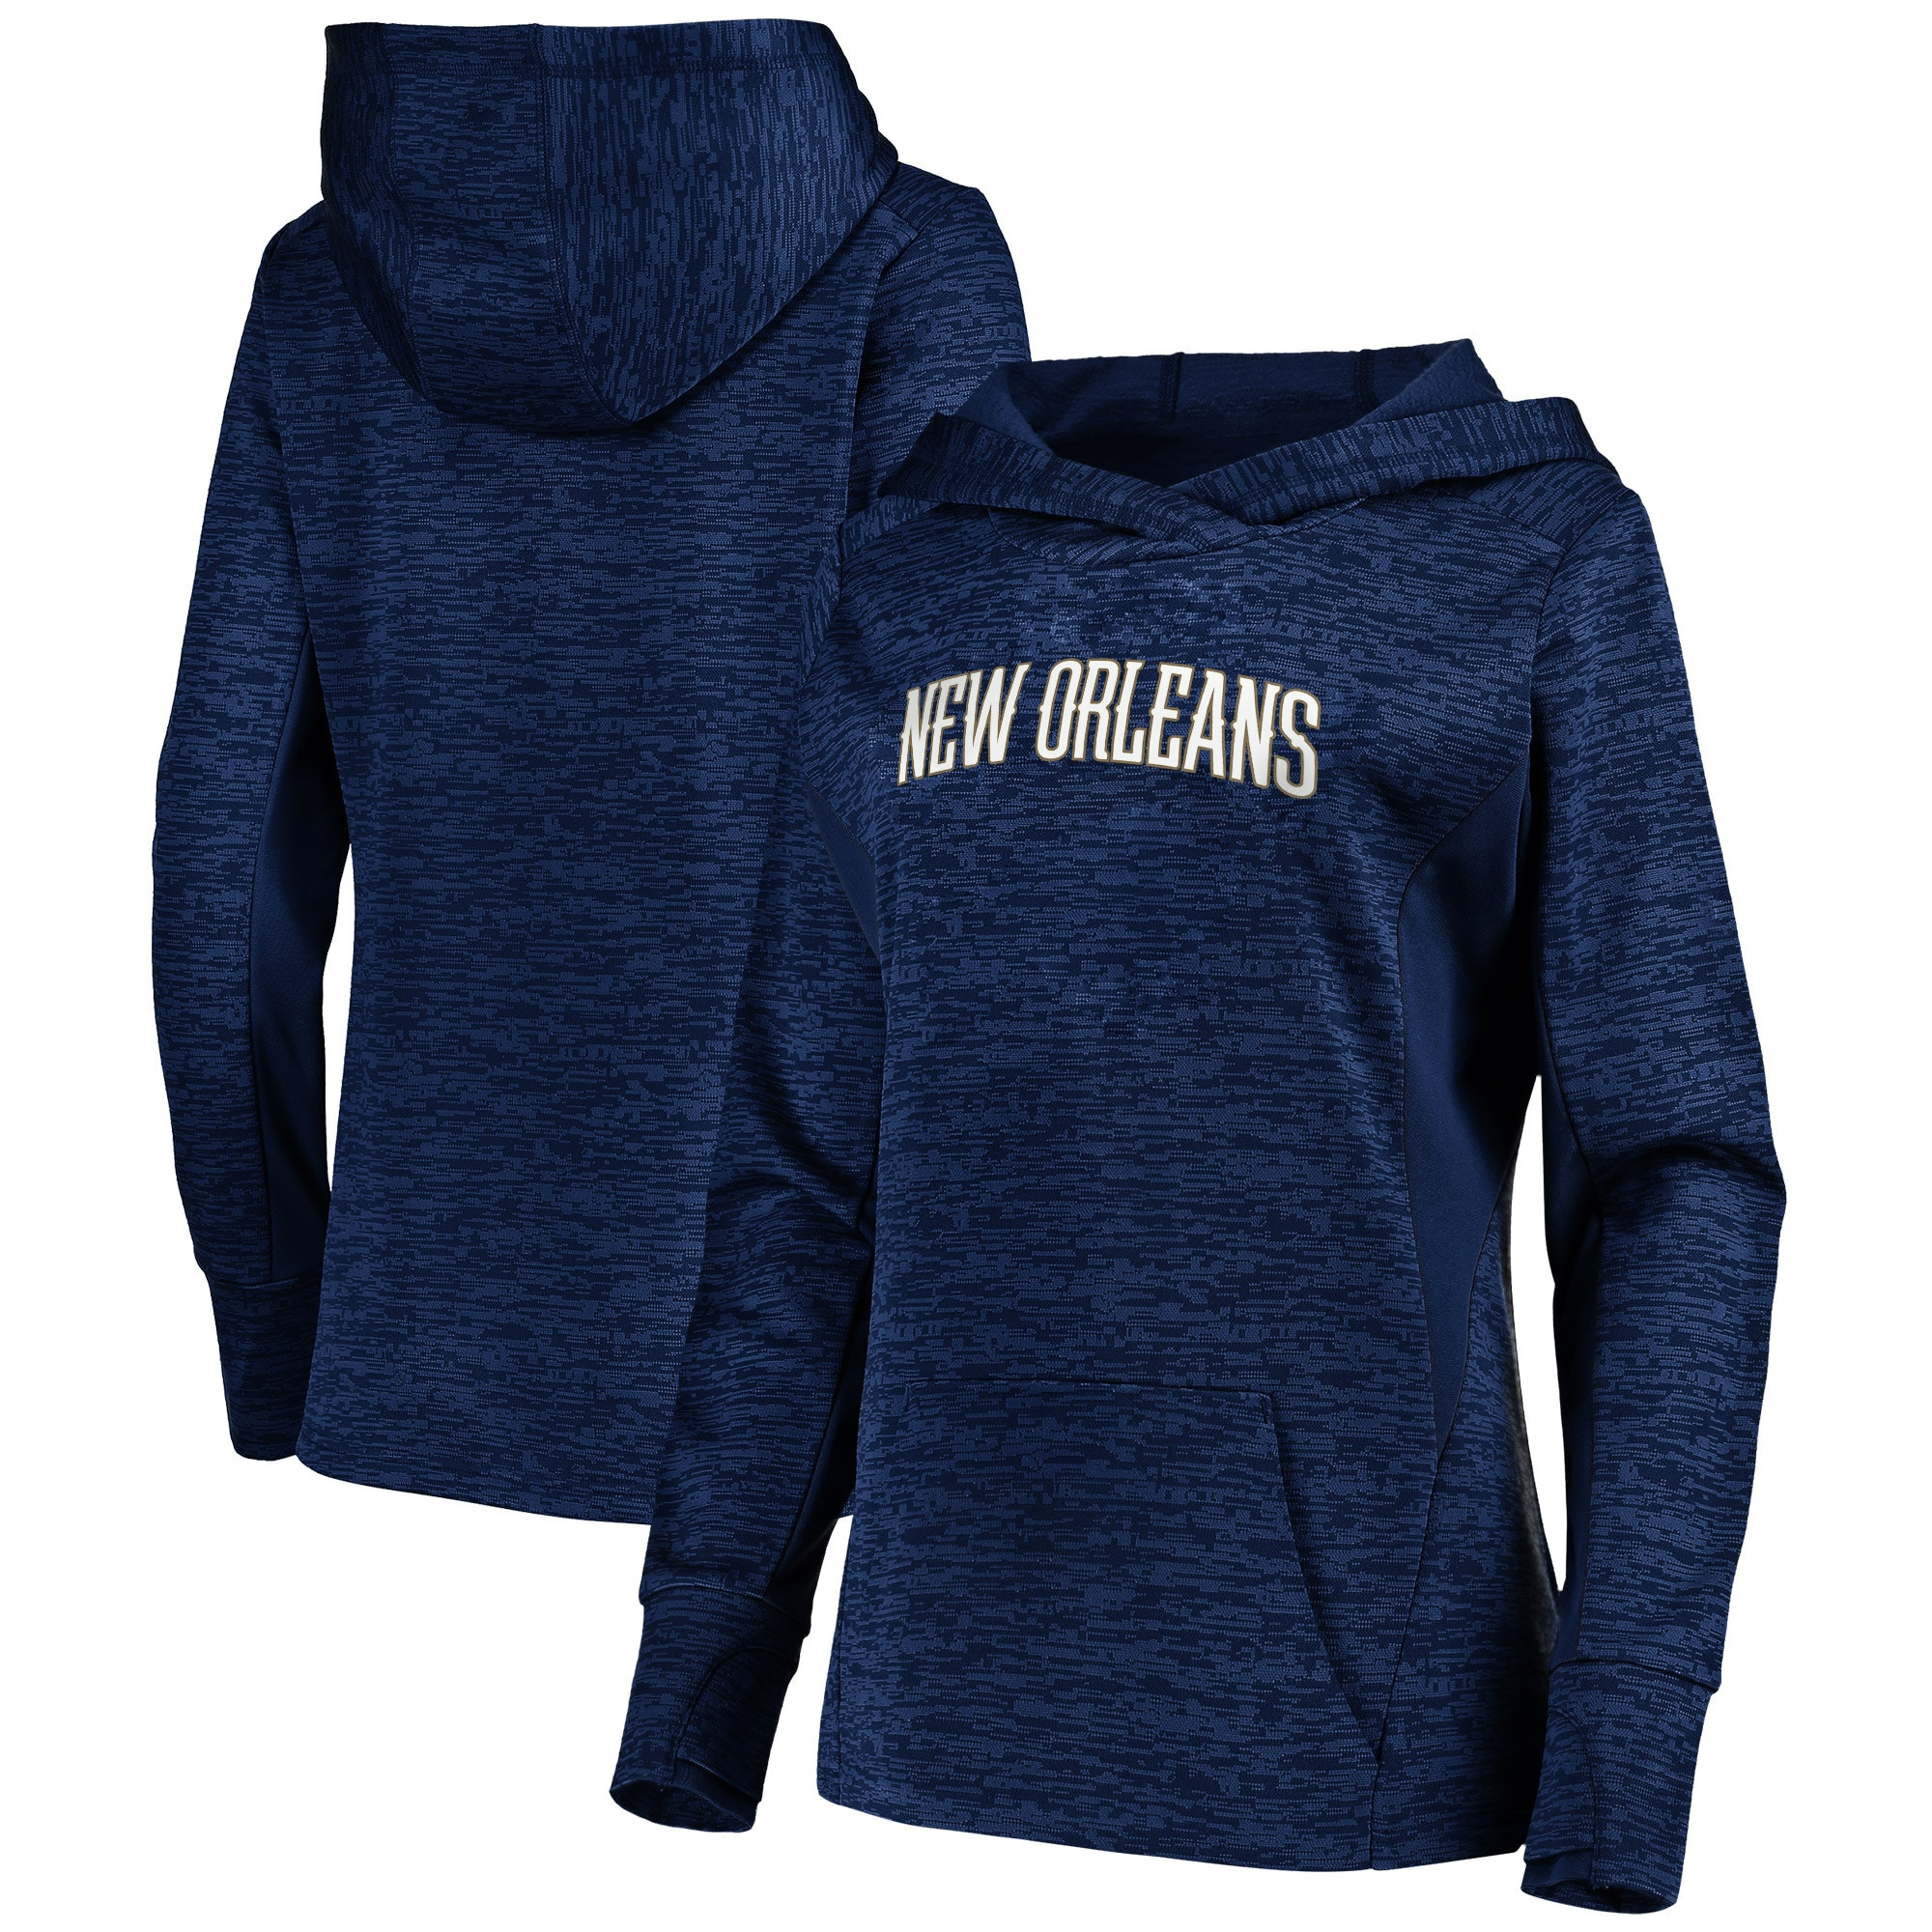 New Orleans Pelicans Fanatics Branded Women's Showtime Done Better Pullover Hoodie - Navy